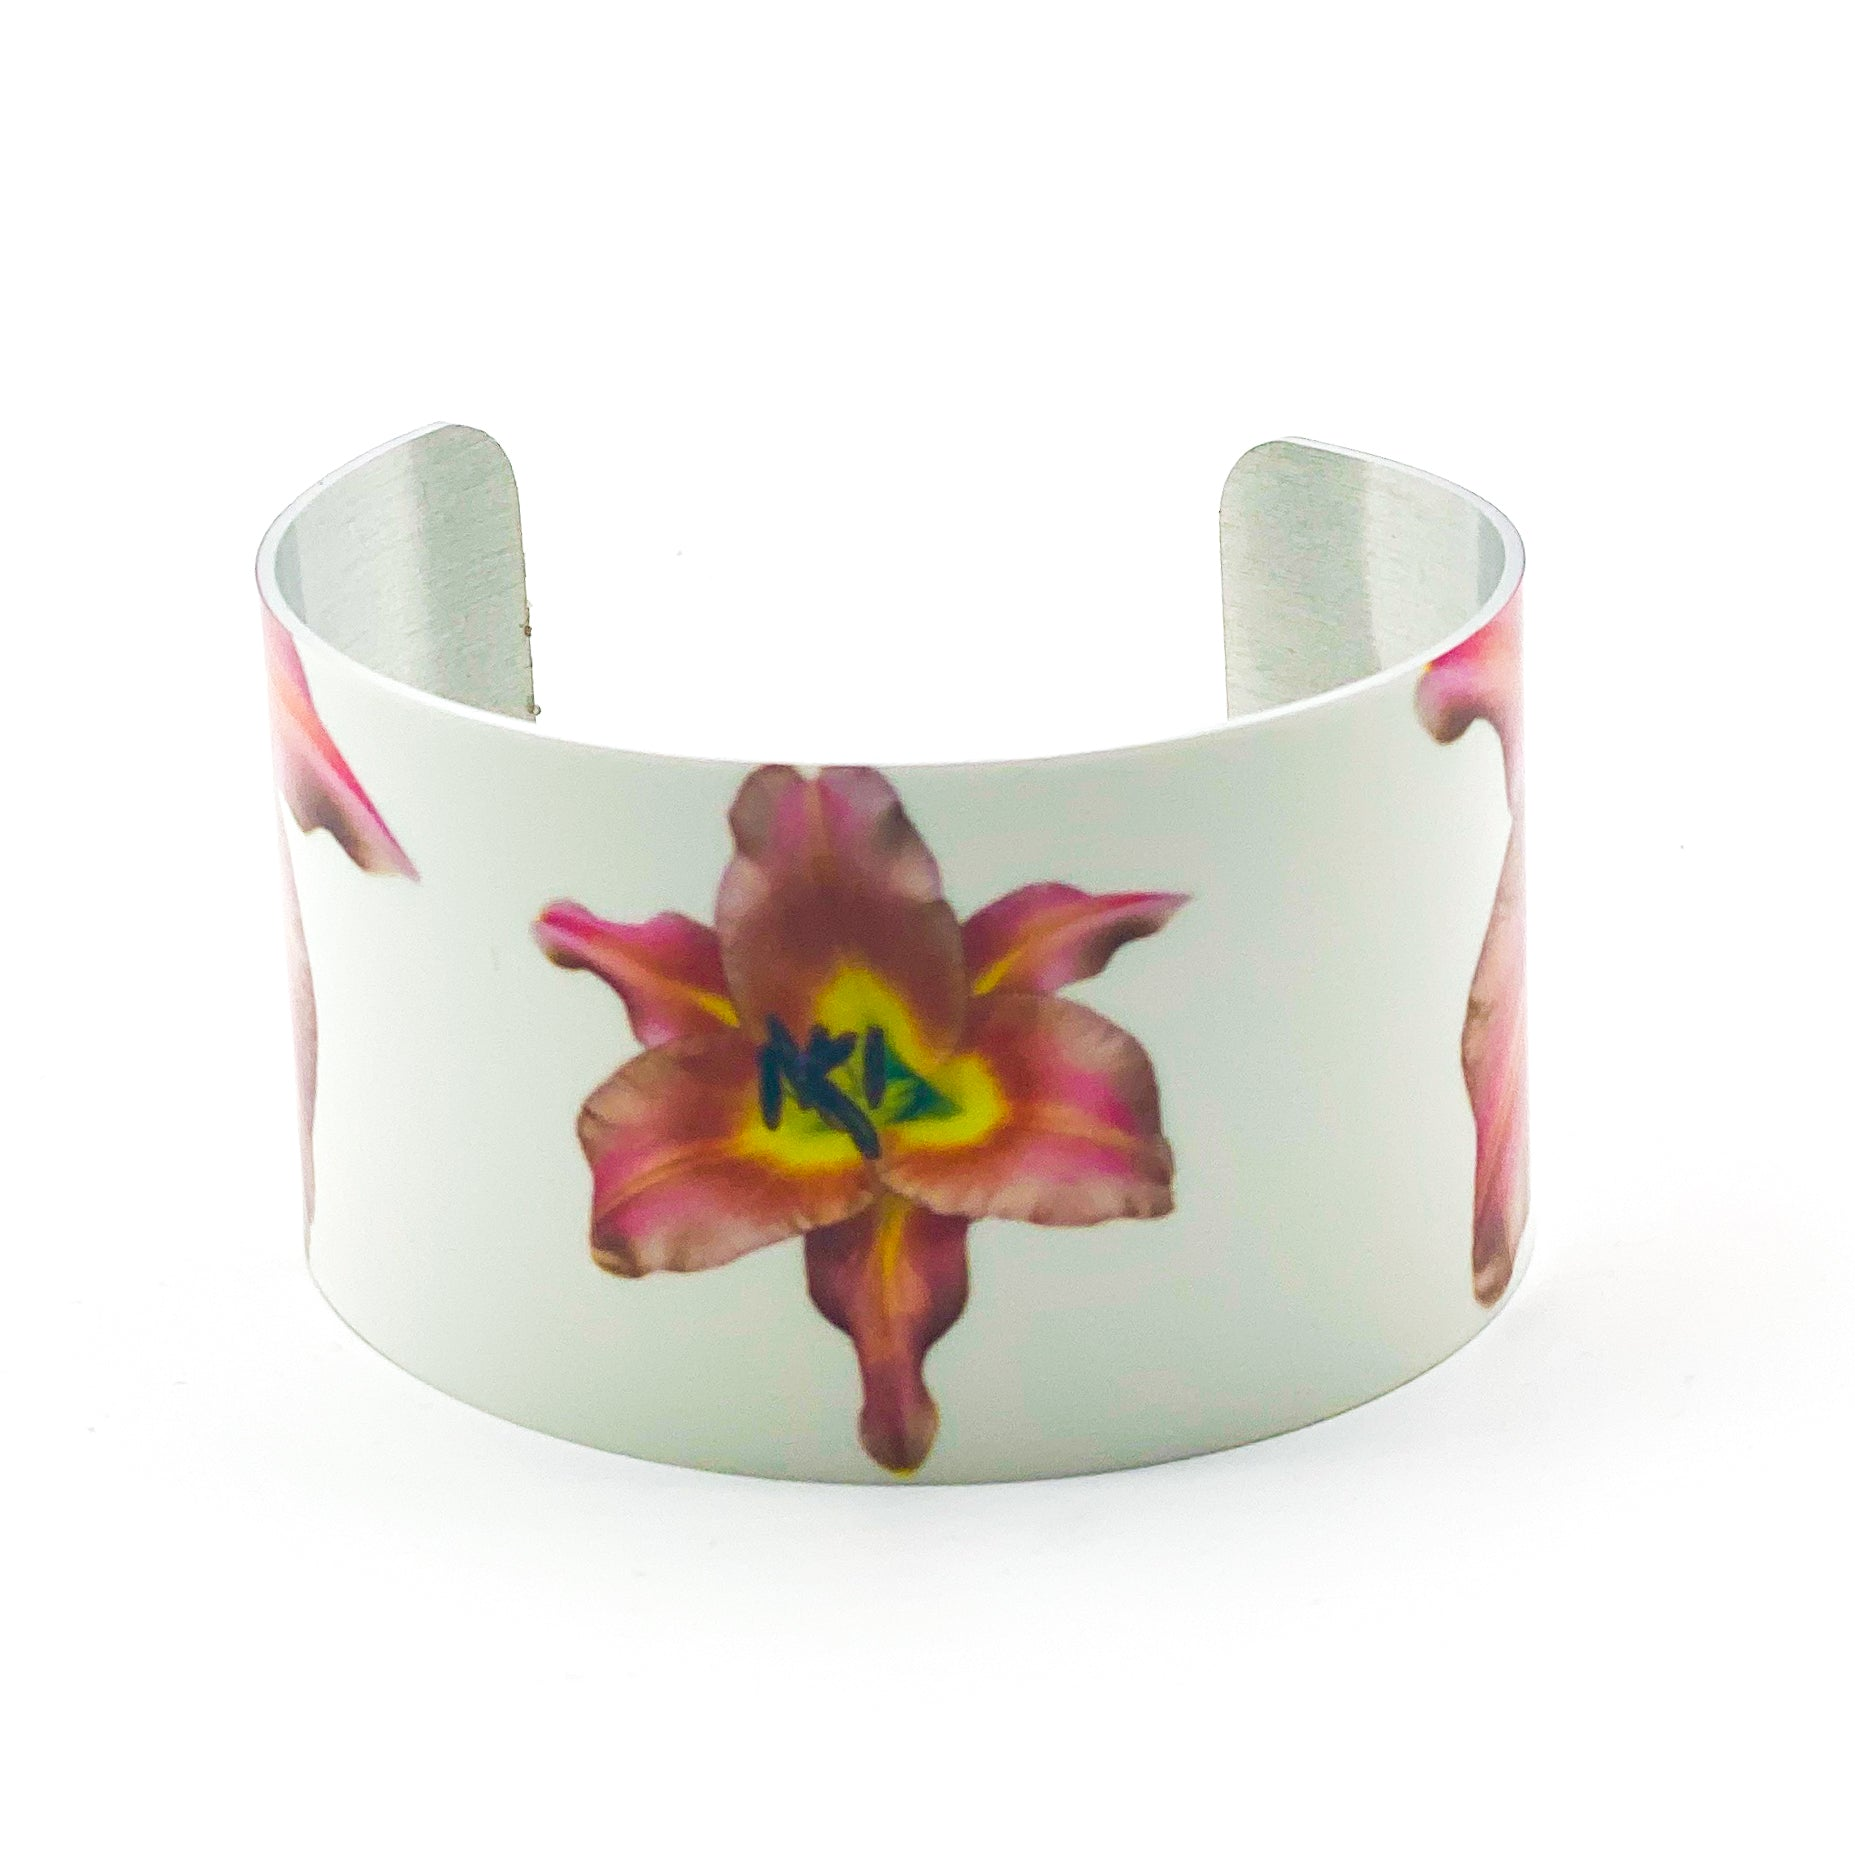 Standard view of Pink Lily Cuff Bracelet | Wear the Wonder